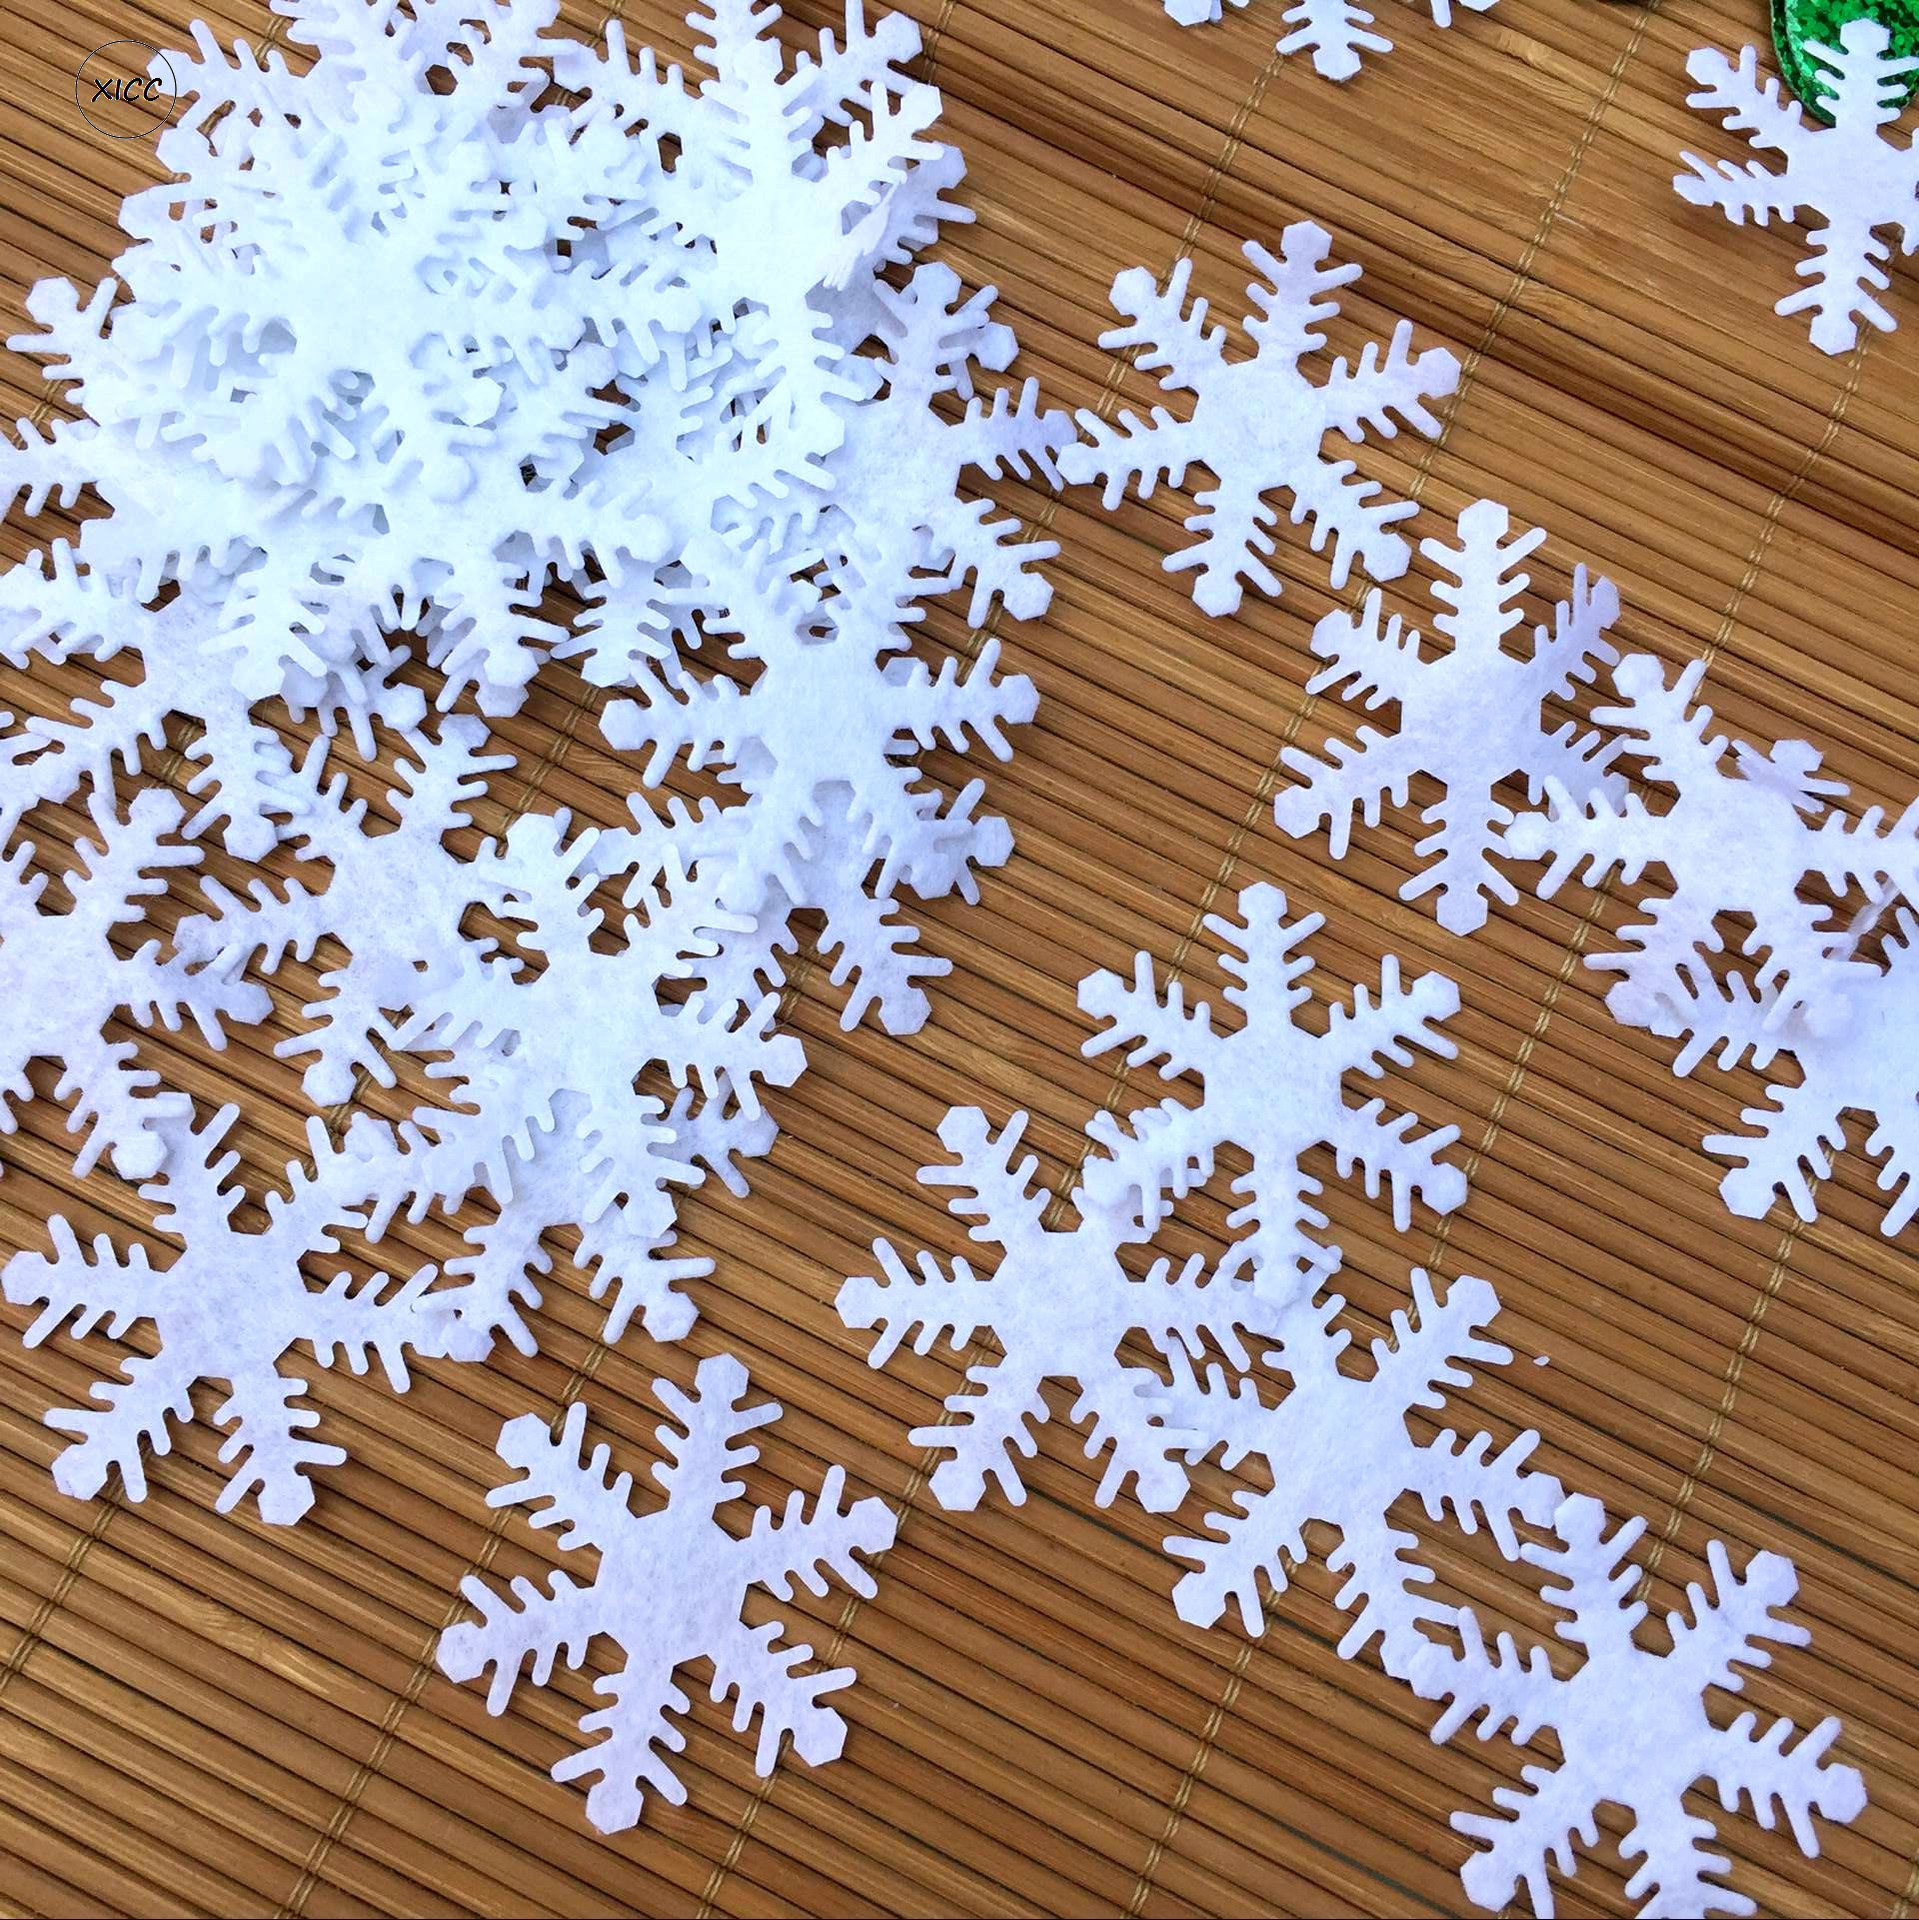 XICC 100pcs Polyester Christmas Snowflake Wool Felt Party White Nonwoven Patches 4cm Applique Sticker For DIY Scrapbooking Craft